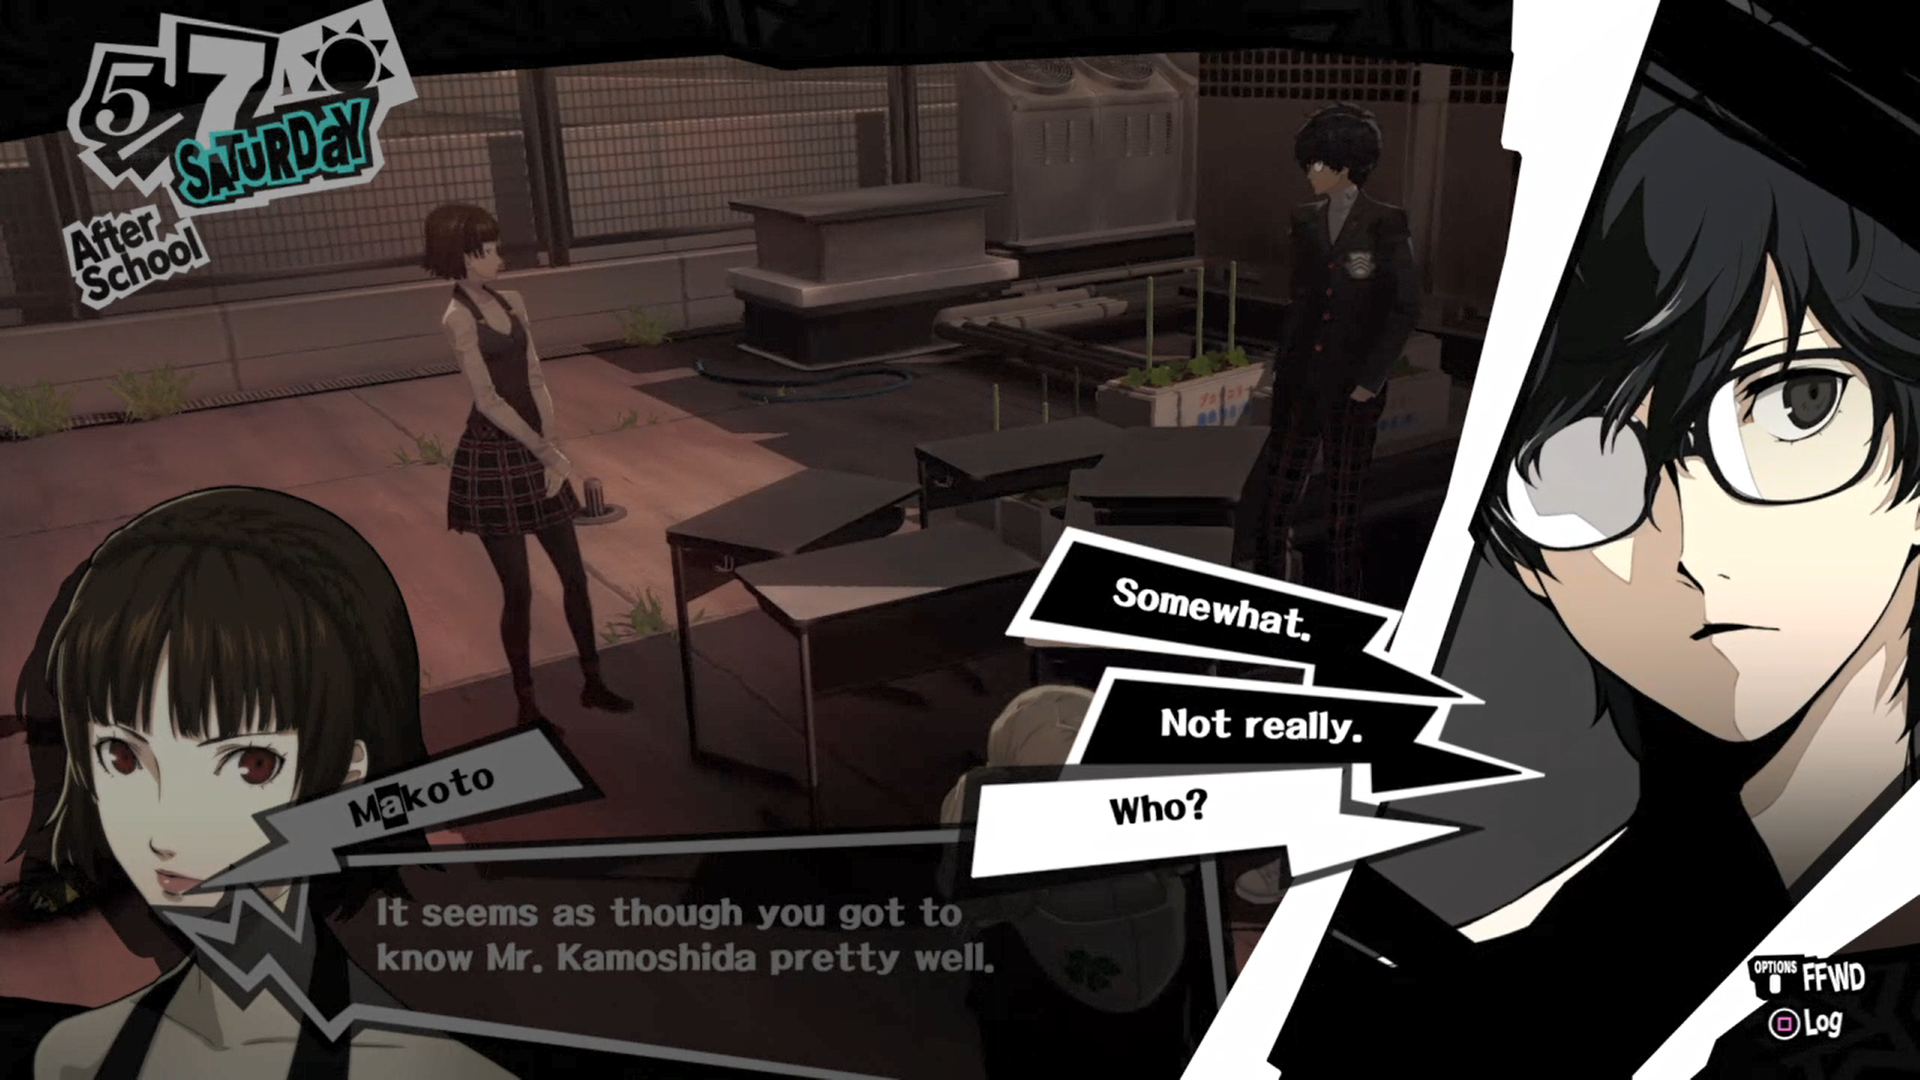 Persona 5 decision